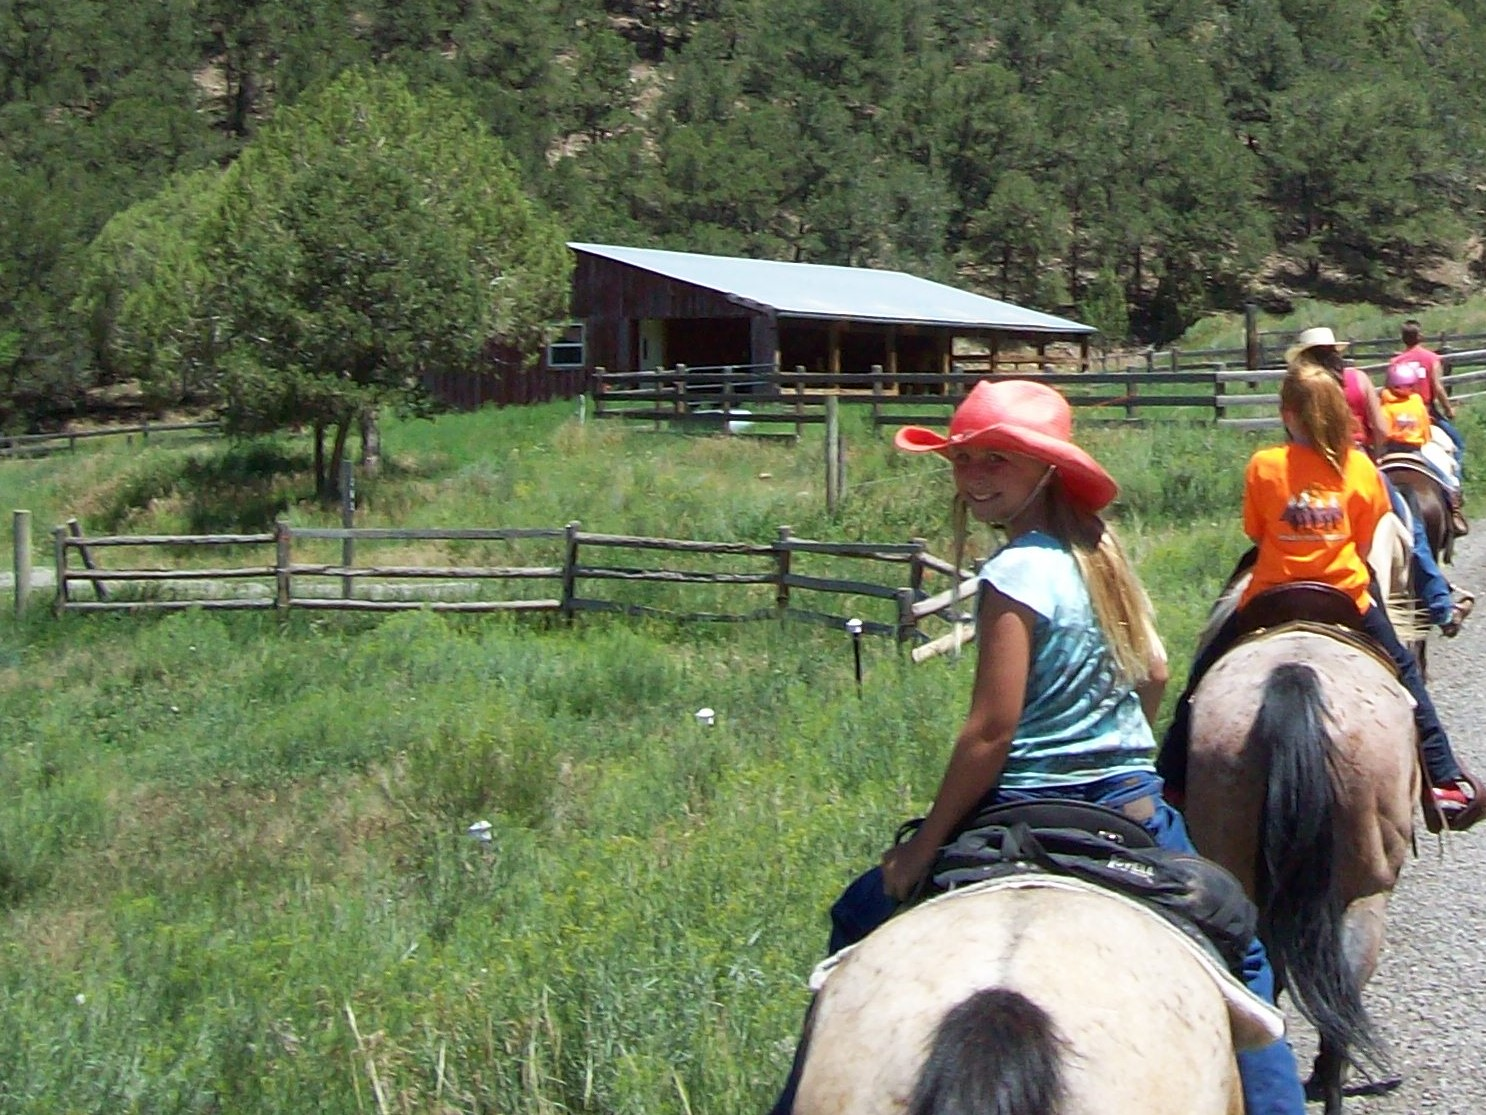 Announcing Free Daily Pick up and Drop off in Ouray for Summer Enrichment